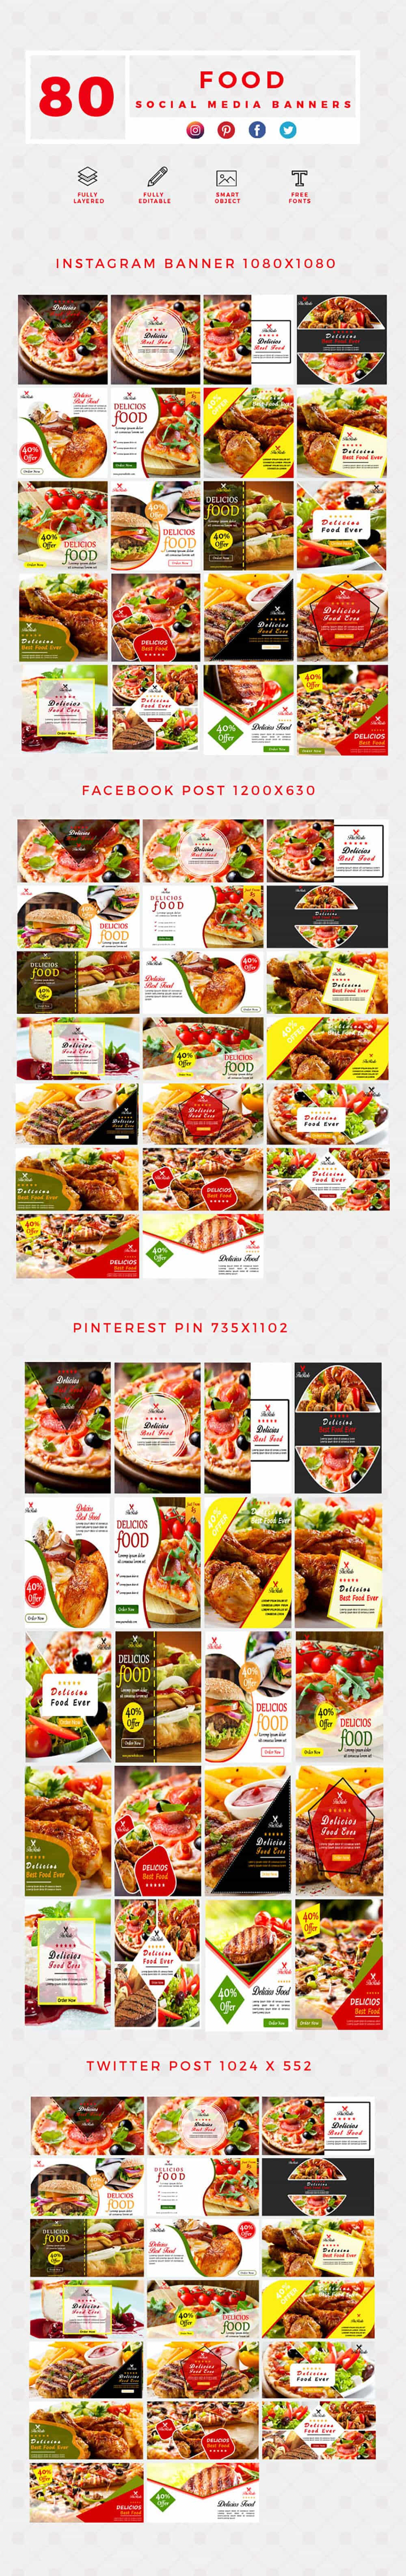 640 Templates for Facebook, Instagram, Twitter, Pinterest - $15 - PREVIEW FOOD min